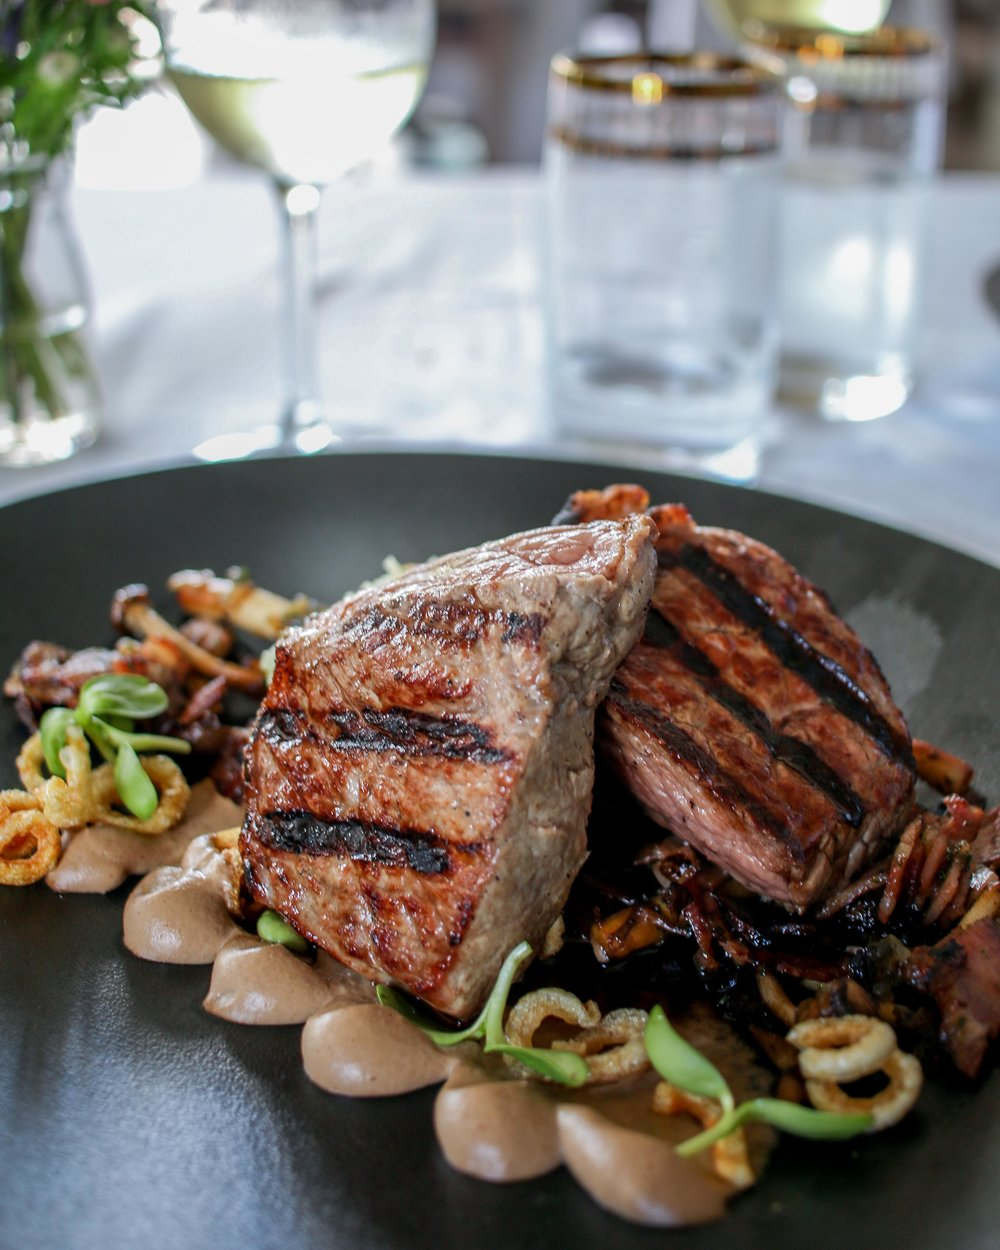 Sirloin steak, crackling, porcini puree, caper & brie crushed baby potato, sautéed mushroom, caramelized onion & bacon, red win jus